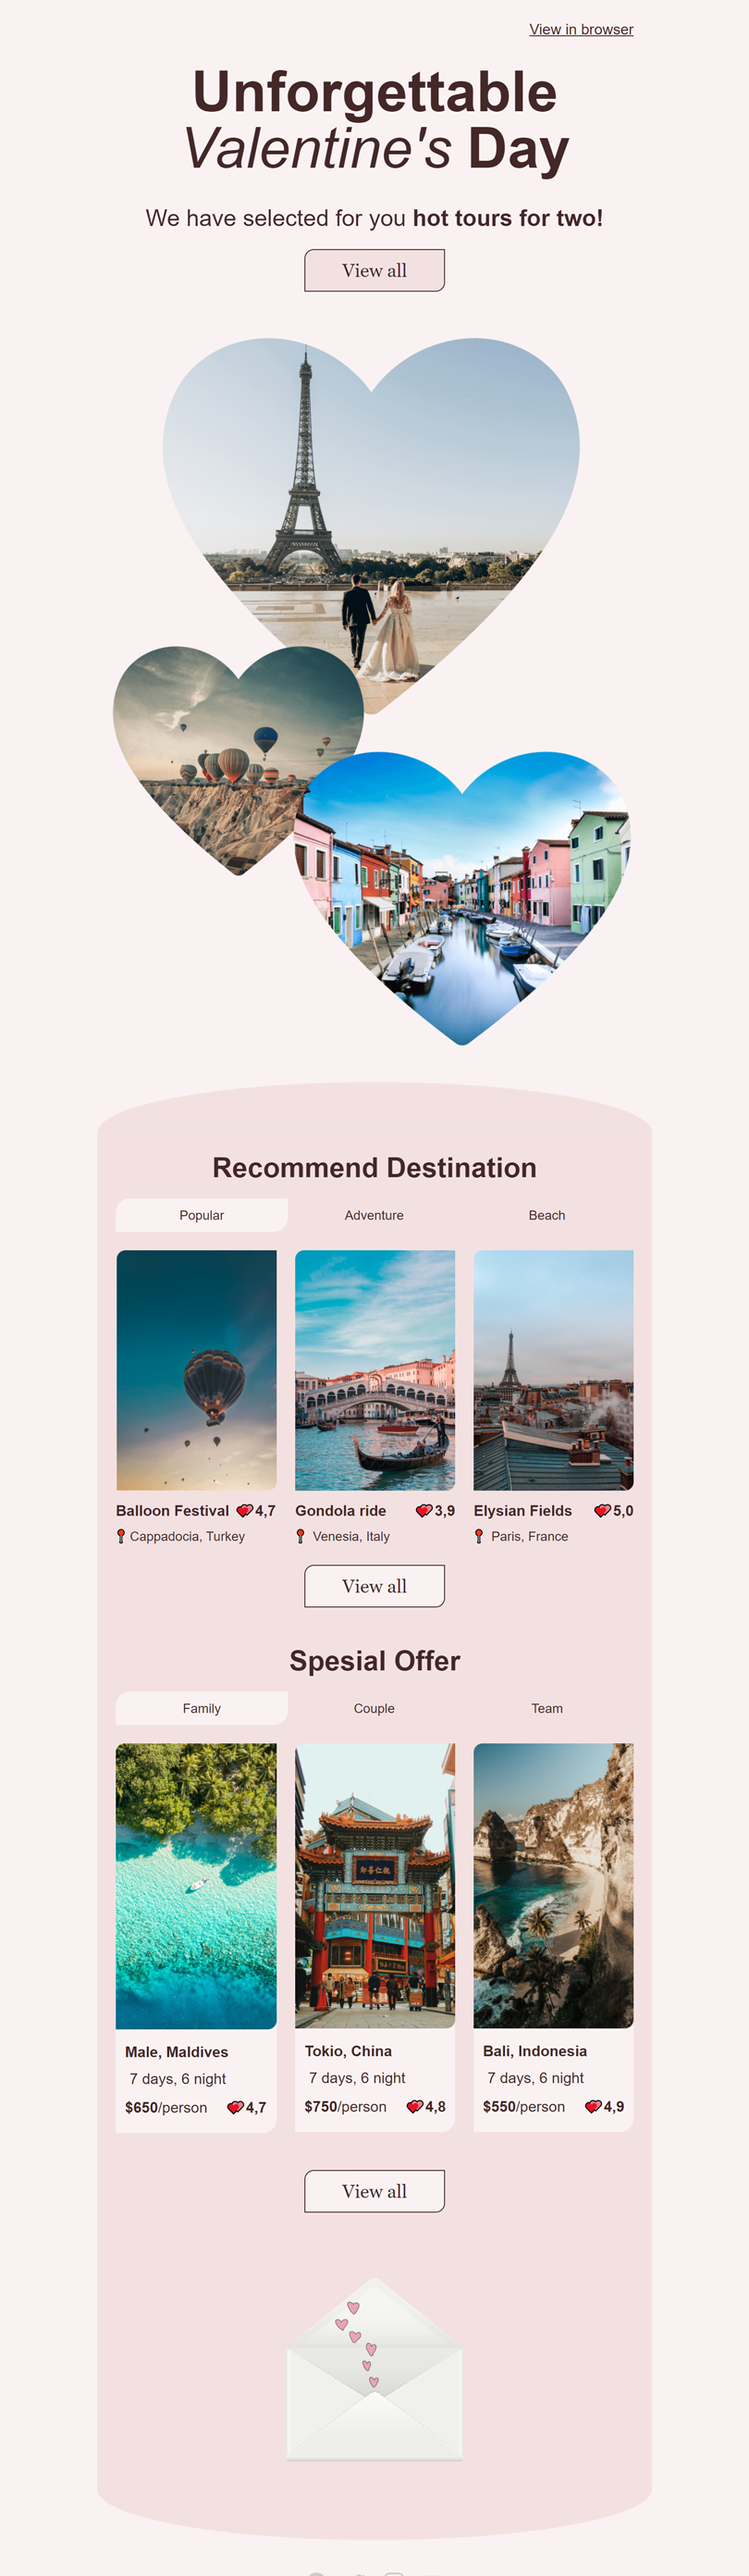 Valentine's Day Email Template «Unforgettable journey» for Travel industry desktop view